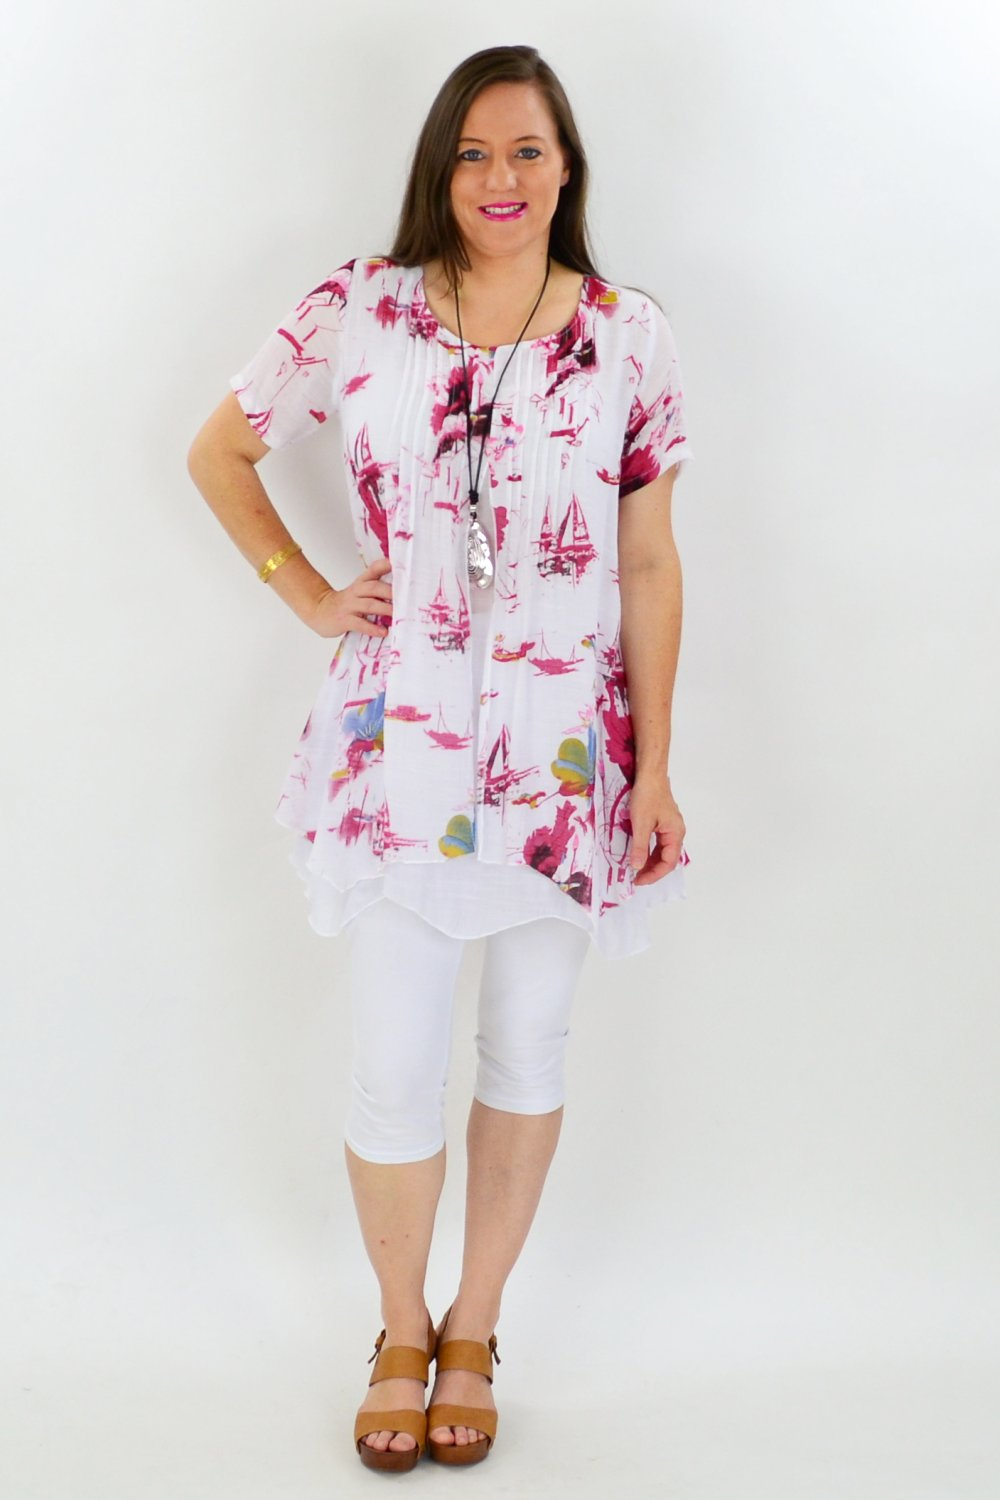 Red Sail Boat Tunic - at I Love Tunics @ www.ilovetunics.com = Number One! Tunics Destination